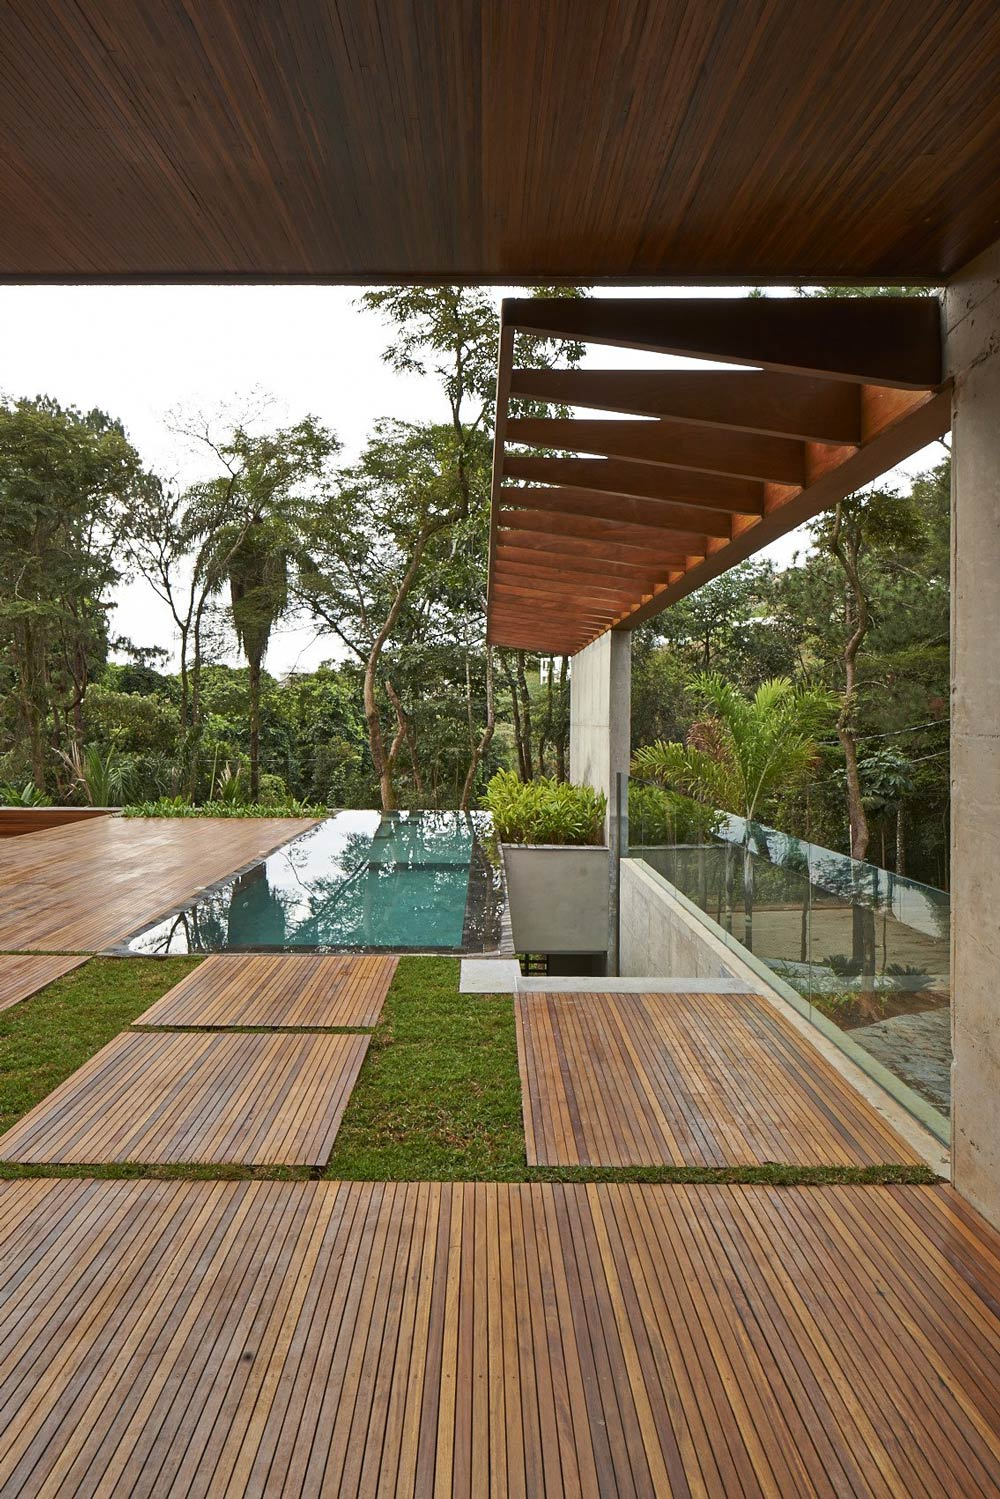 Wooden Deck, Pool, Contemporary Home in Nova Lima, Brazil